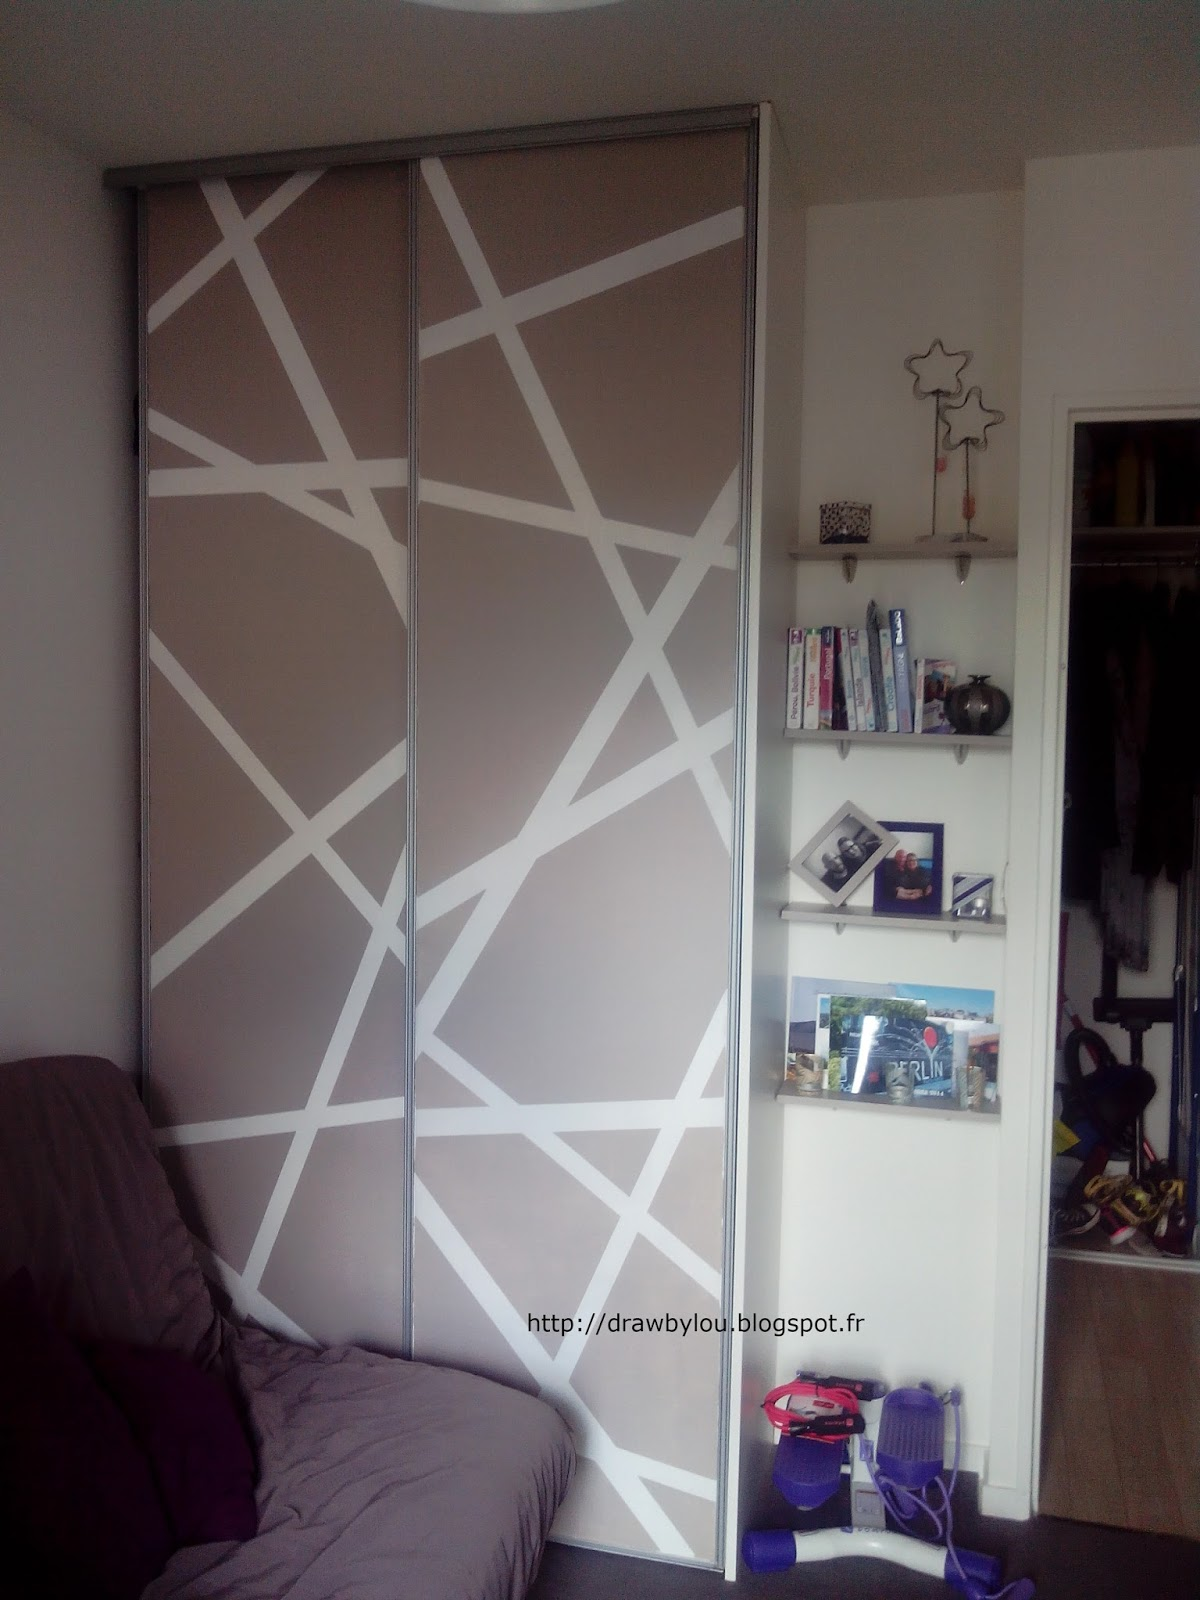 Draw By Lou Des Portes De Placard Originales Diy